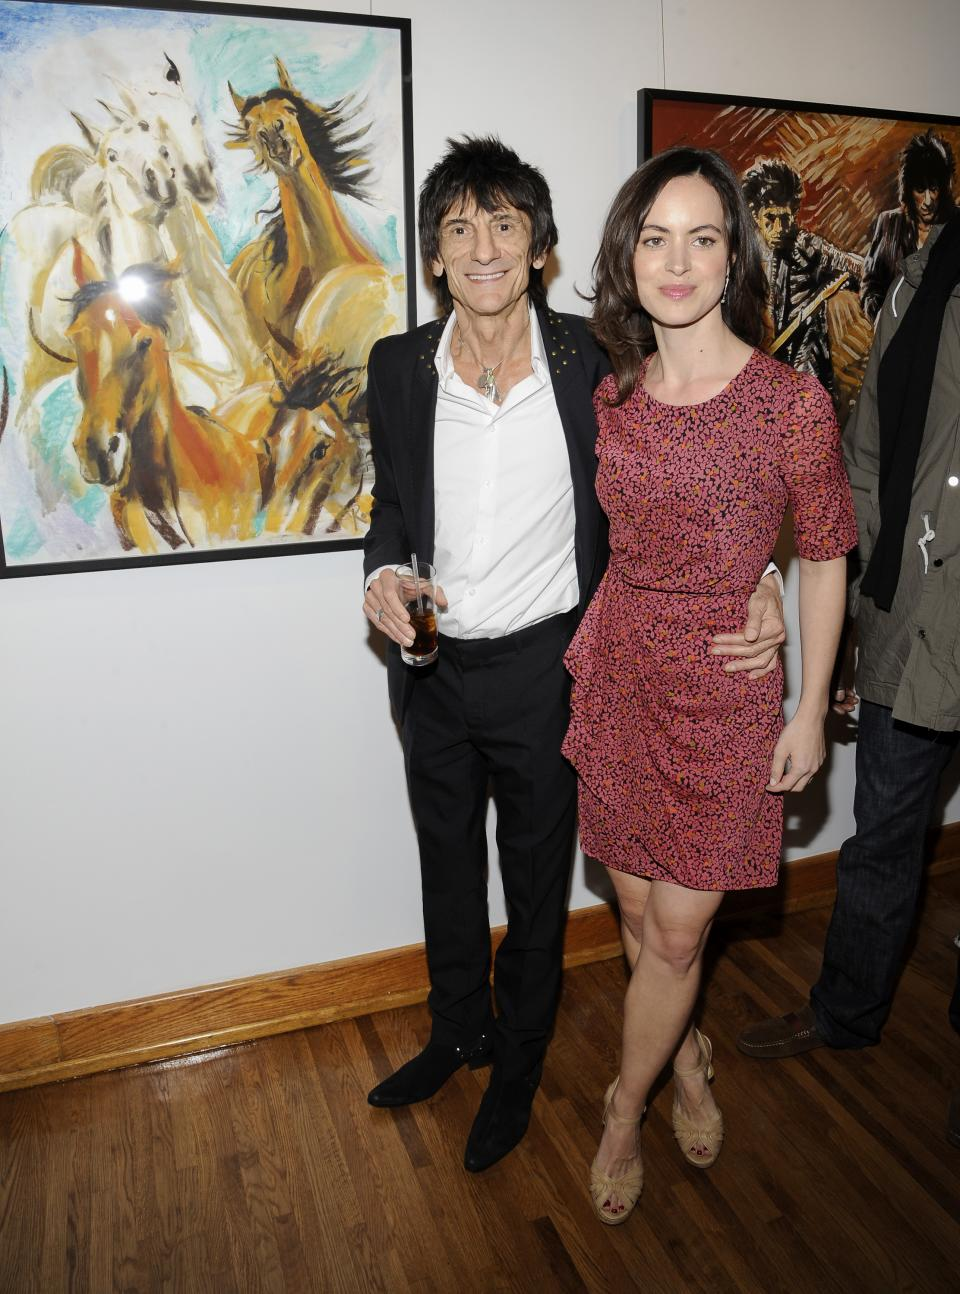 "Rolling Stones guitarist Ronnie Wood poses for a photo with his girlfriend, theatre producer Sally Humphreys, after a news conference unveiling his new art exhibition ""Faces, Time and Places"" on Monday, April 9, 2012, in New York. (AP Photo/Evan Agostini)"